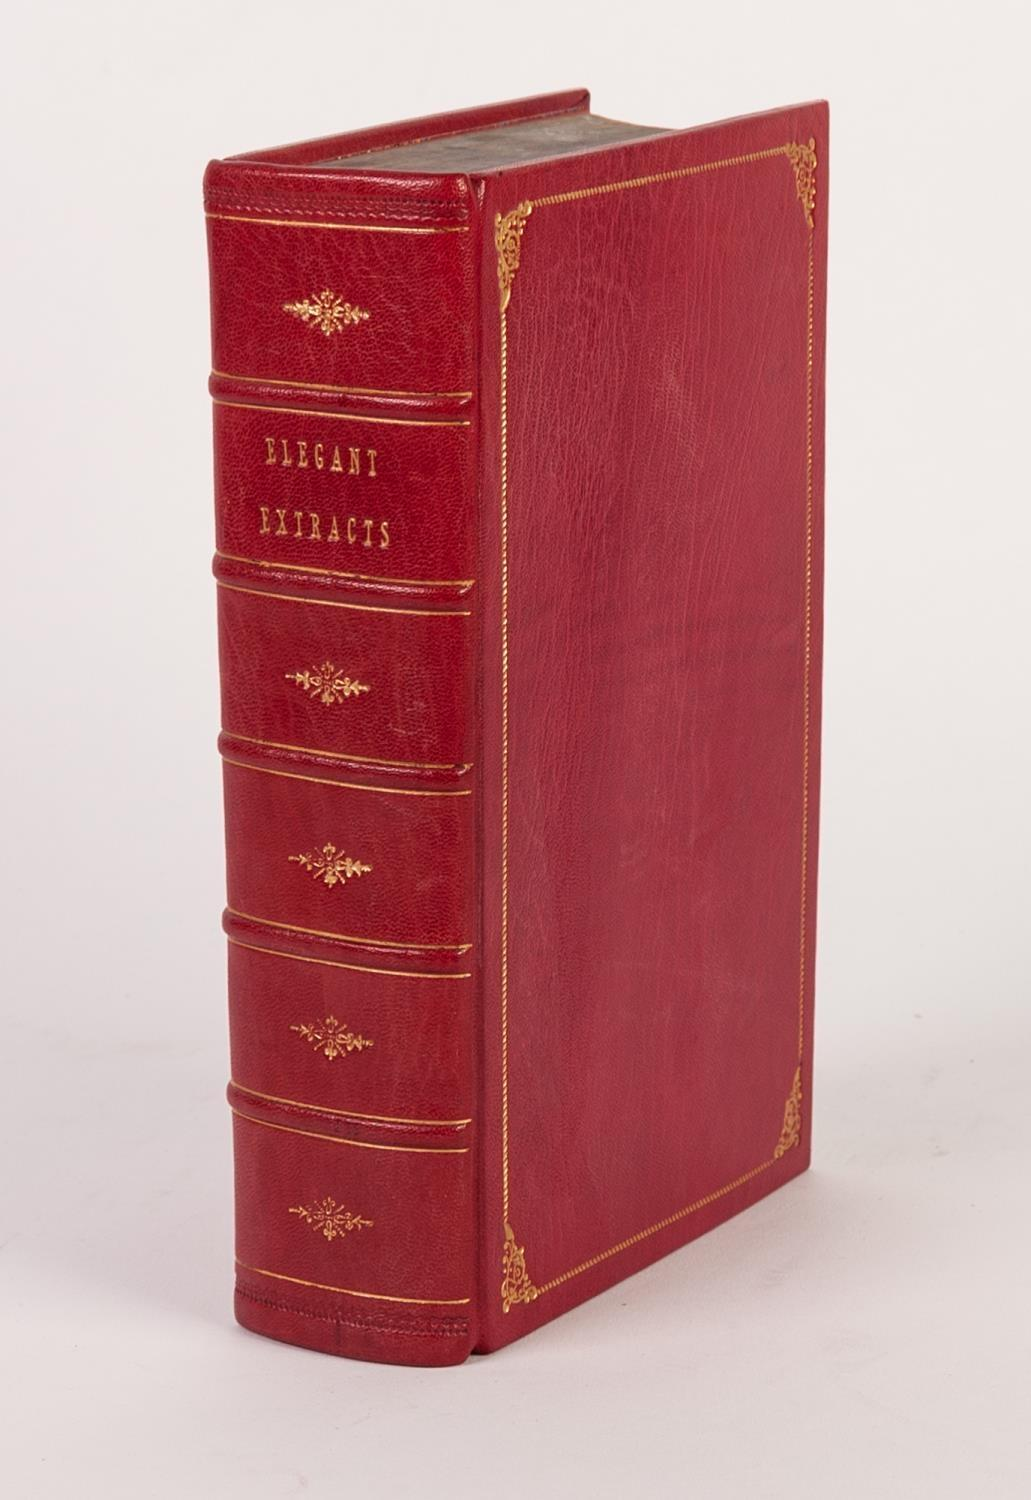 Lot 156 - FINE BINDING. Elegant Extracts, Poetry, Improvement of the Youth, printed Charles Dilly 1791. Full